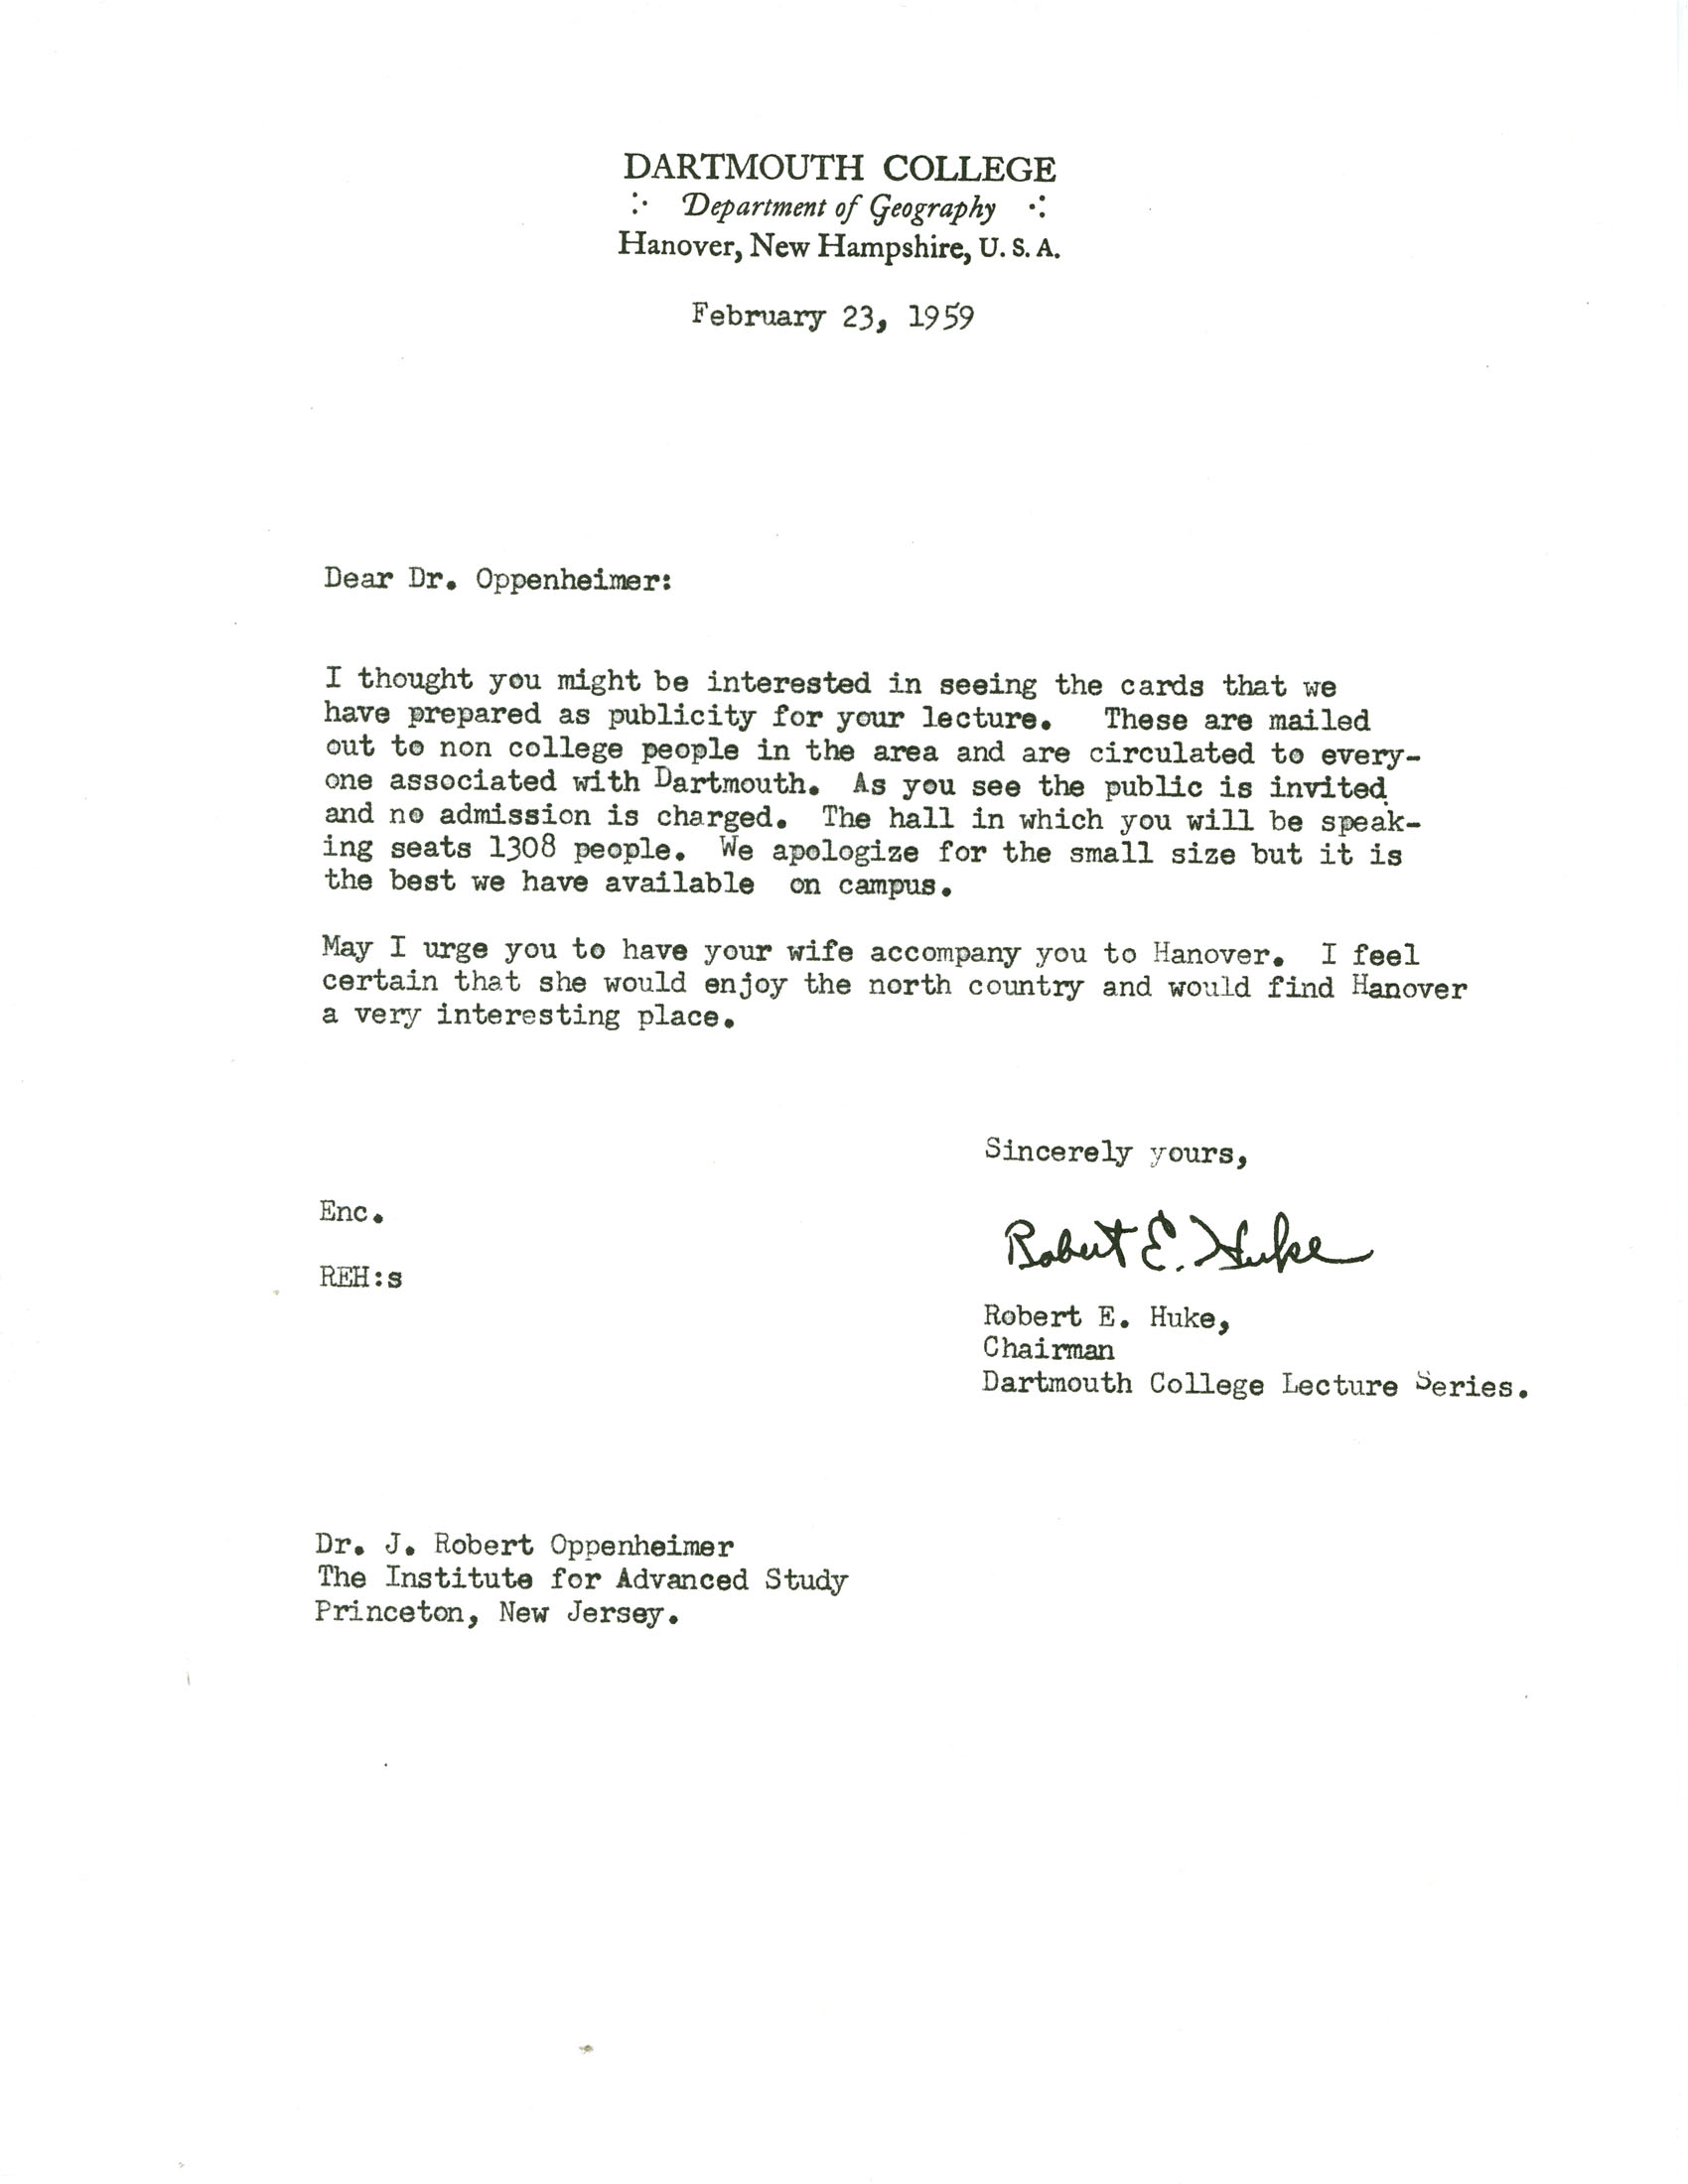 Day notice letter letter gallery day notice vacate letter tenant letter from robert huke dartmouth college to robert oppenheimer altavistaventures Image collections